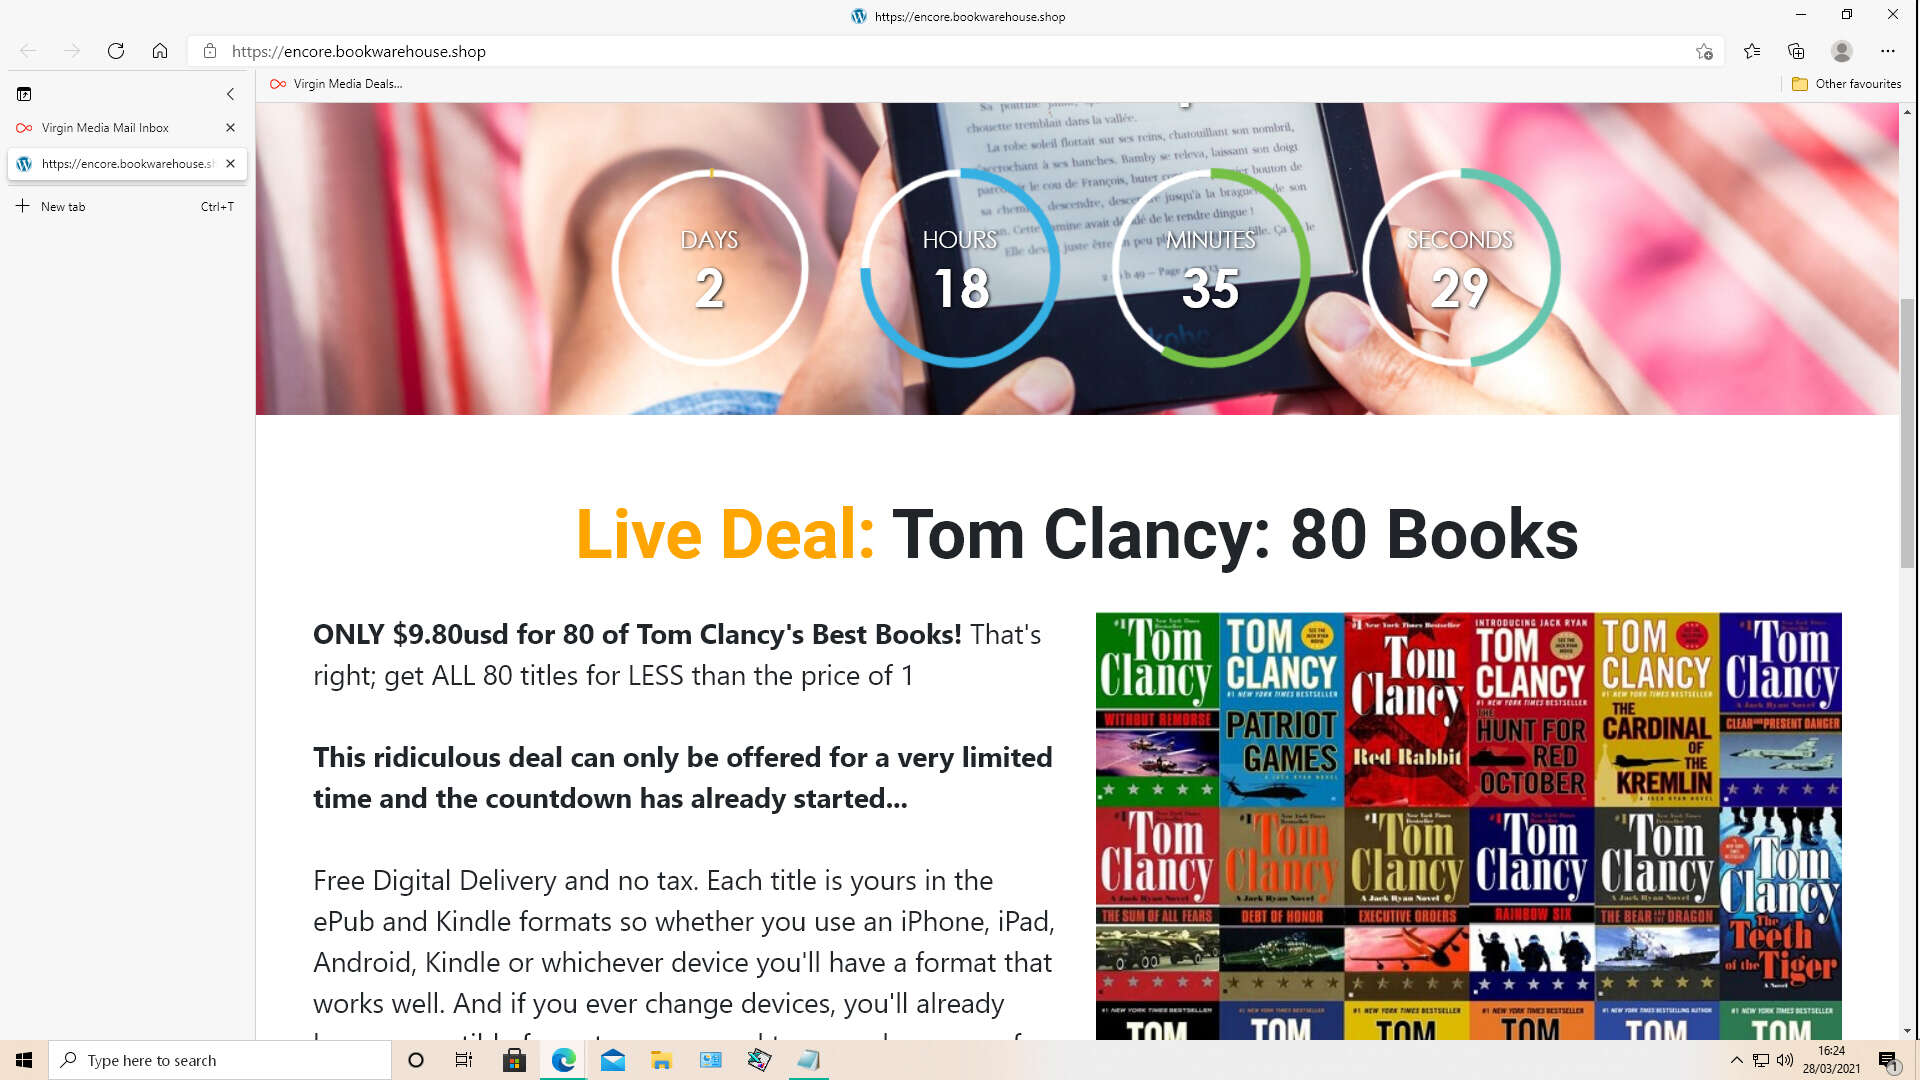 tom clancy books offer.jpg